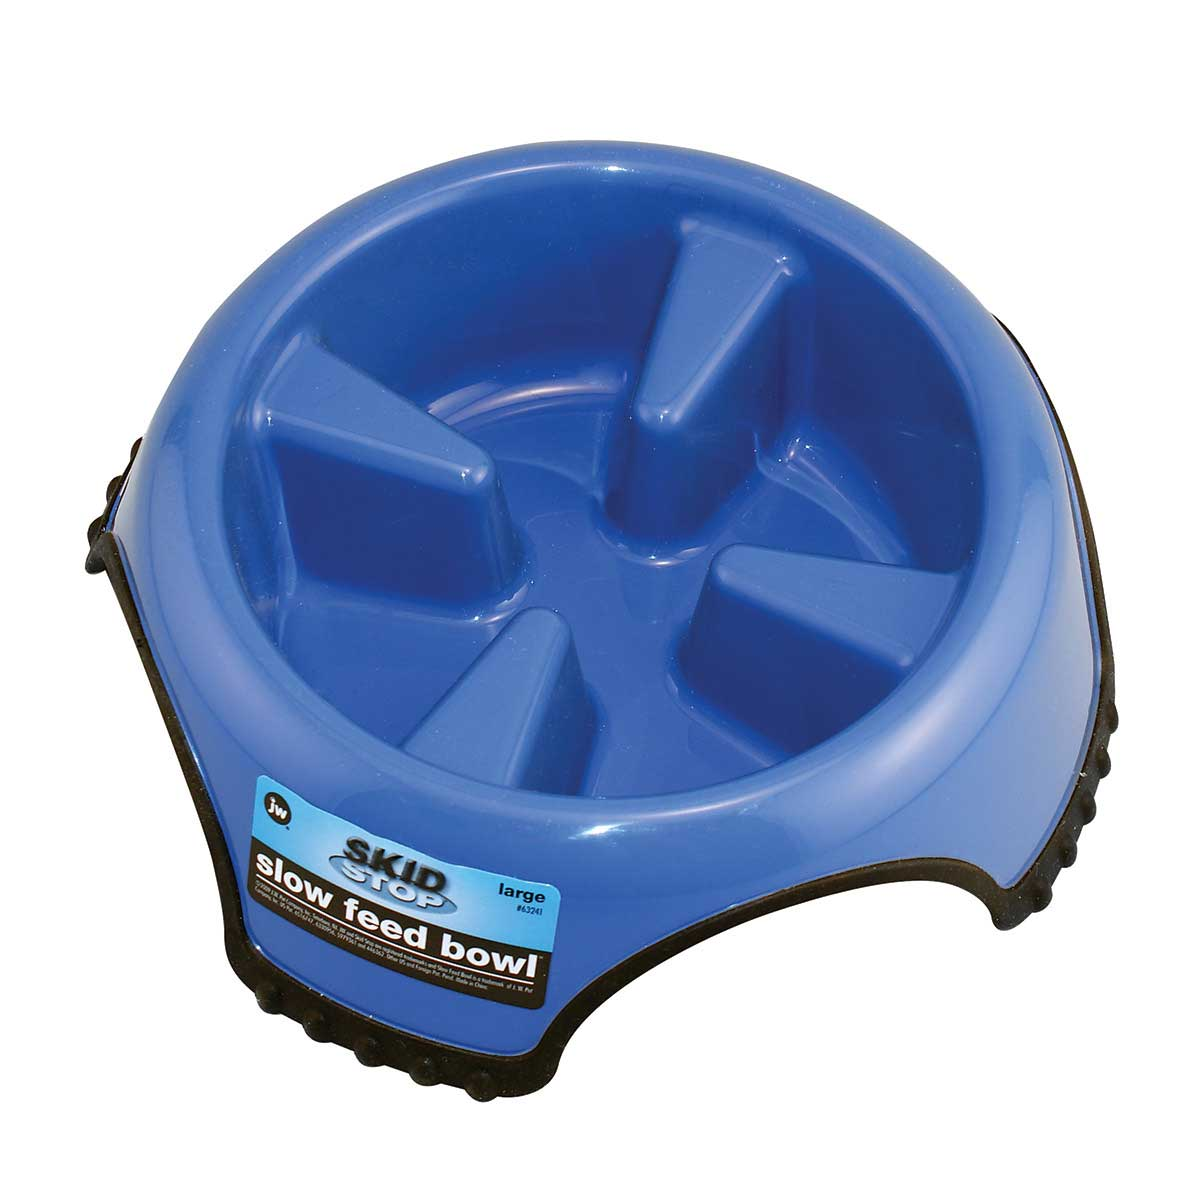 Skid Stop Slow Feed Bowl for Dogs - Size Large